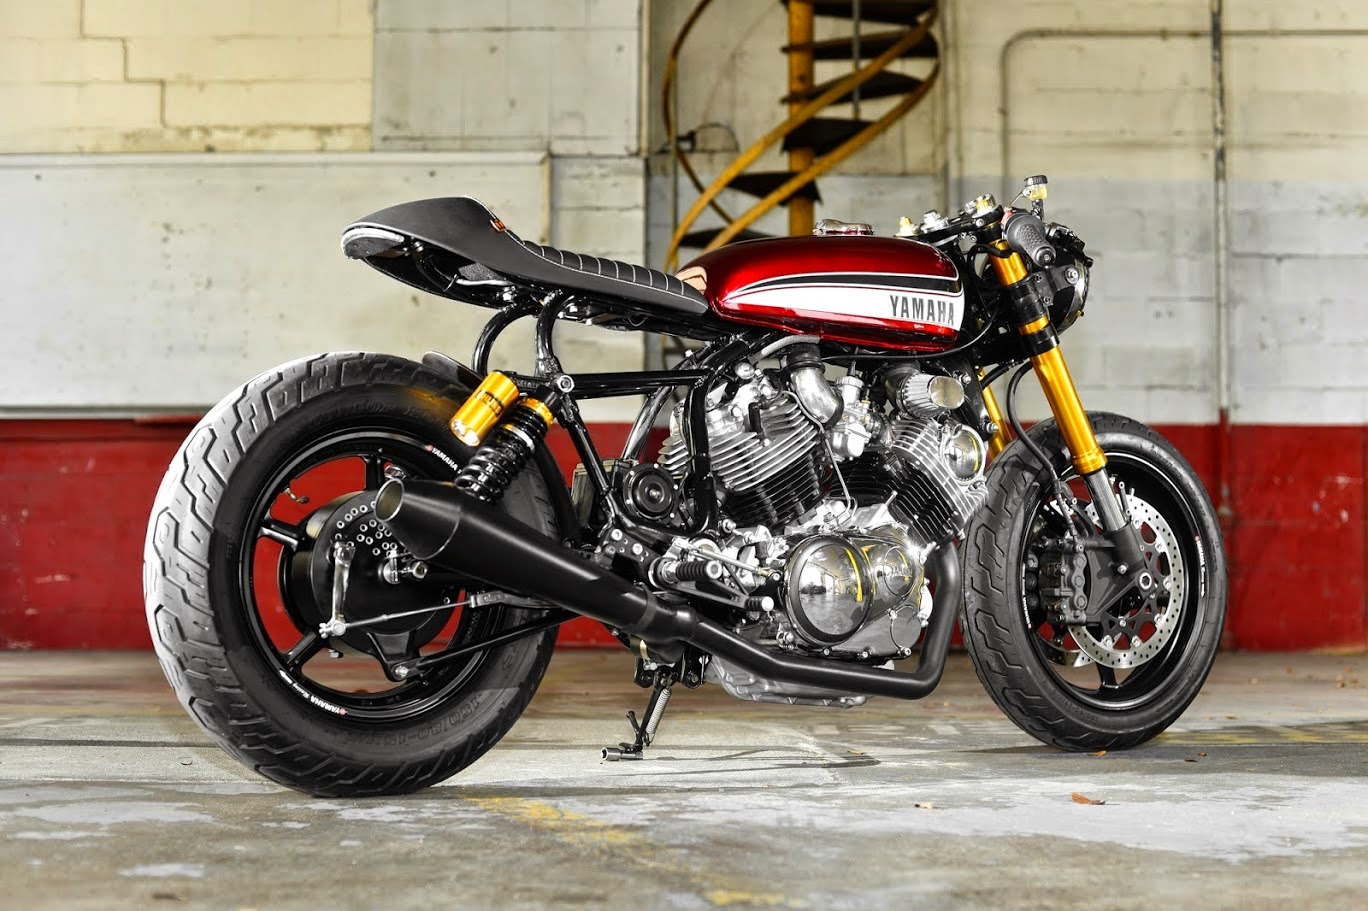 racing caf yamaha xv 750 virago by hageman motorcycles. Black Bedroom Furniture Sets. Home Design Ideas